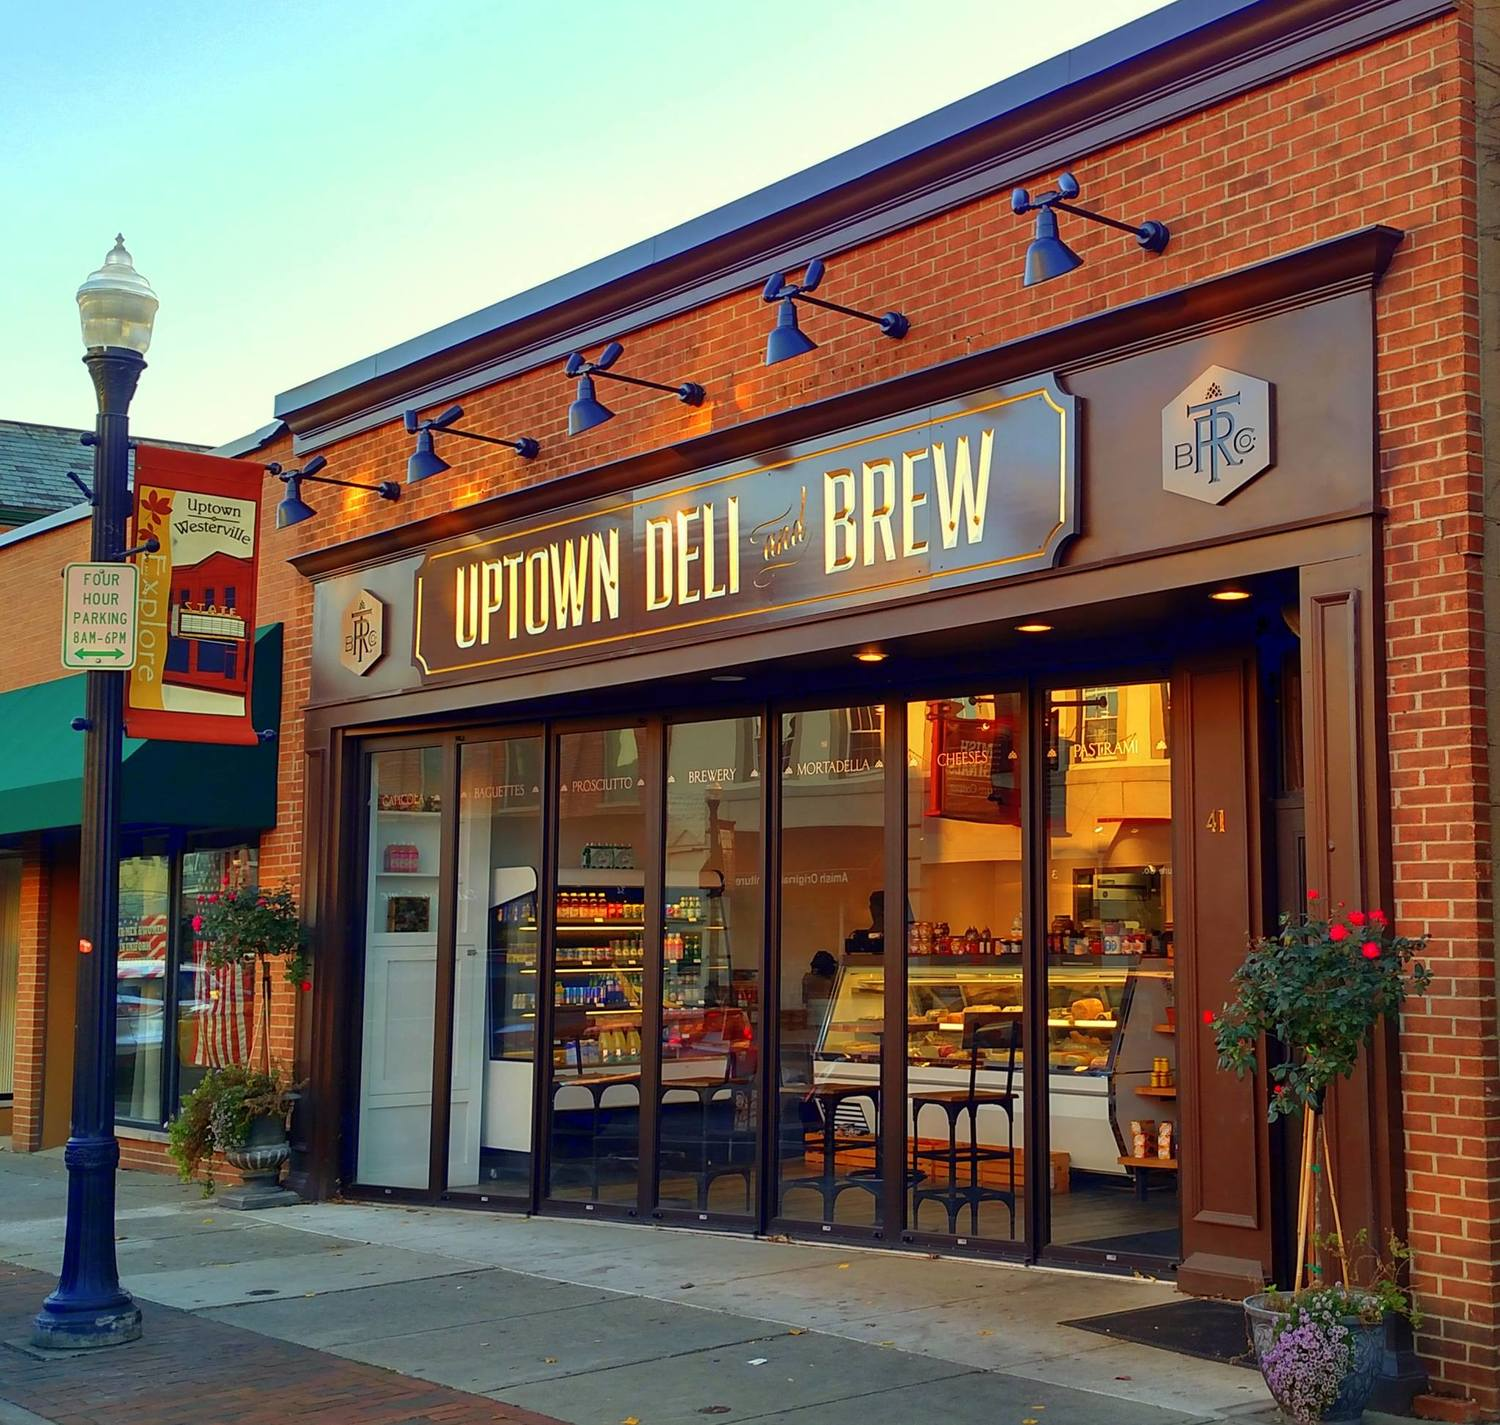 uptown deli and brew classy exterior